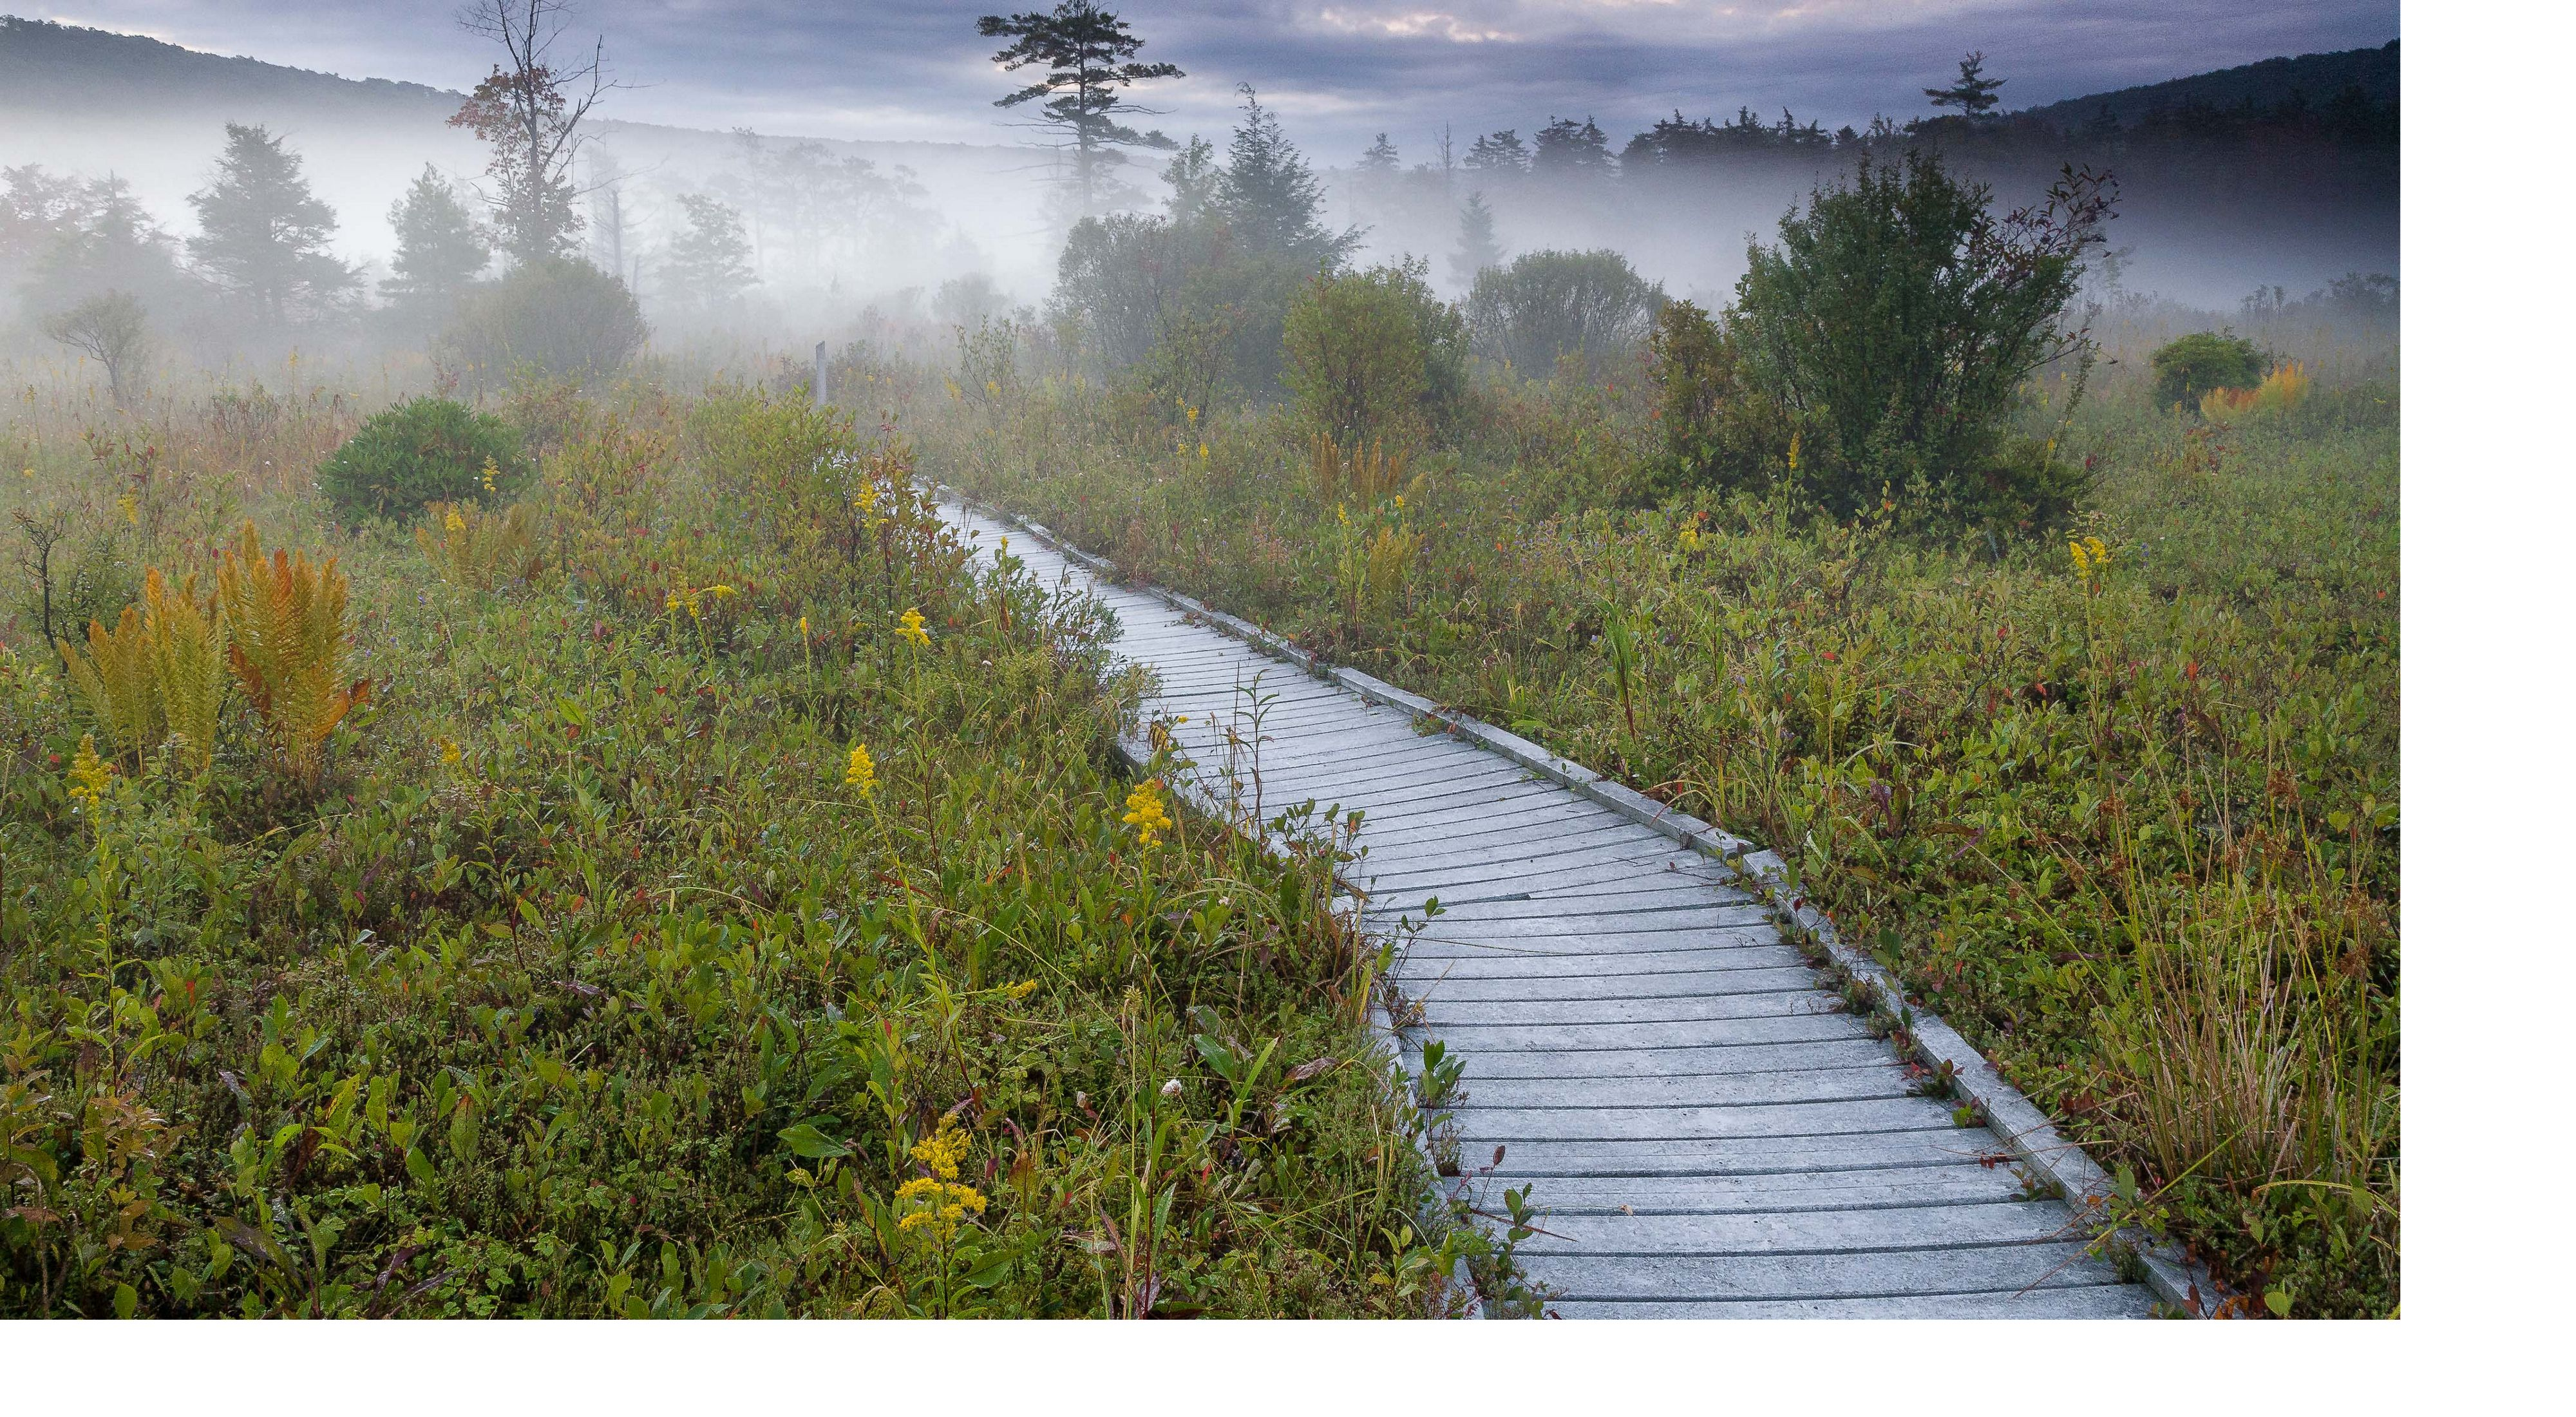 Boardwalk through the wetlands of The Nature Conservancy's Cranesville Swamp Preserve.